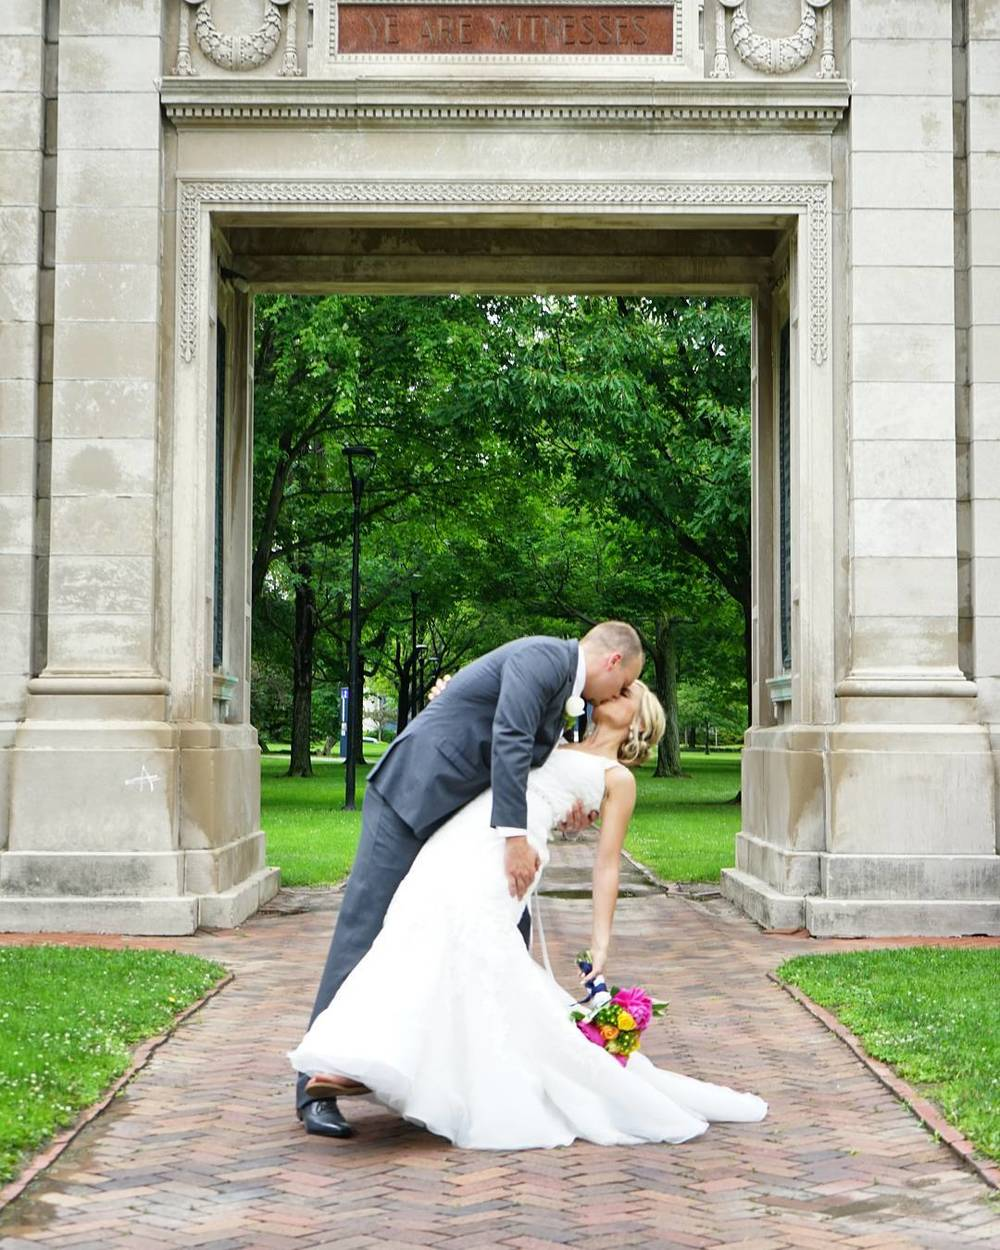 A_walk_through_the_park_turned_into_a_beautiful_wedding_portrait___Shot_with__sonyalpha__Edited_in__on1pics___wedding__weddingphoto__weddingphotographer__tjshots__oberlin__ohio__love__kiss__bride__groom.jpg